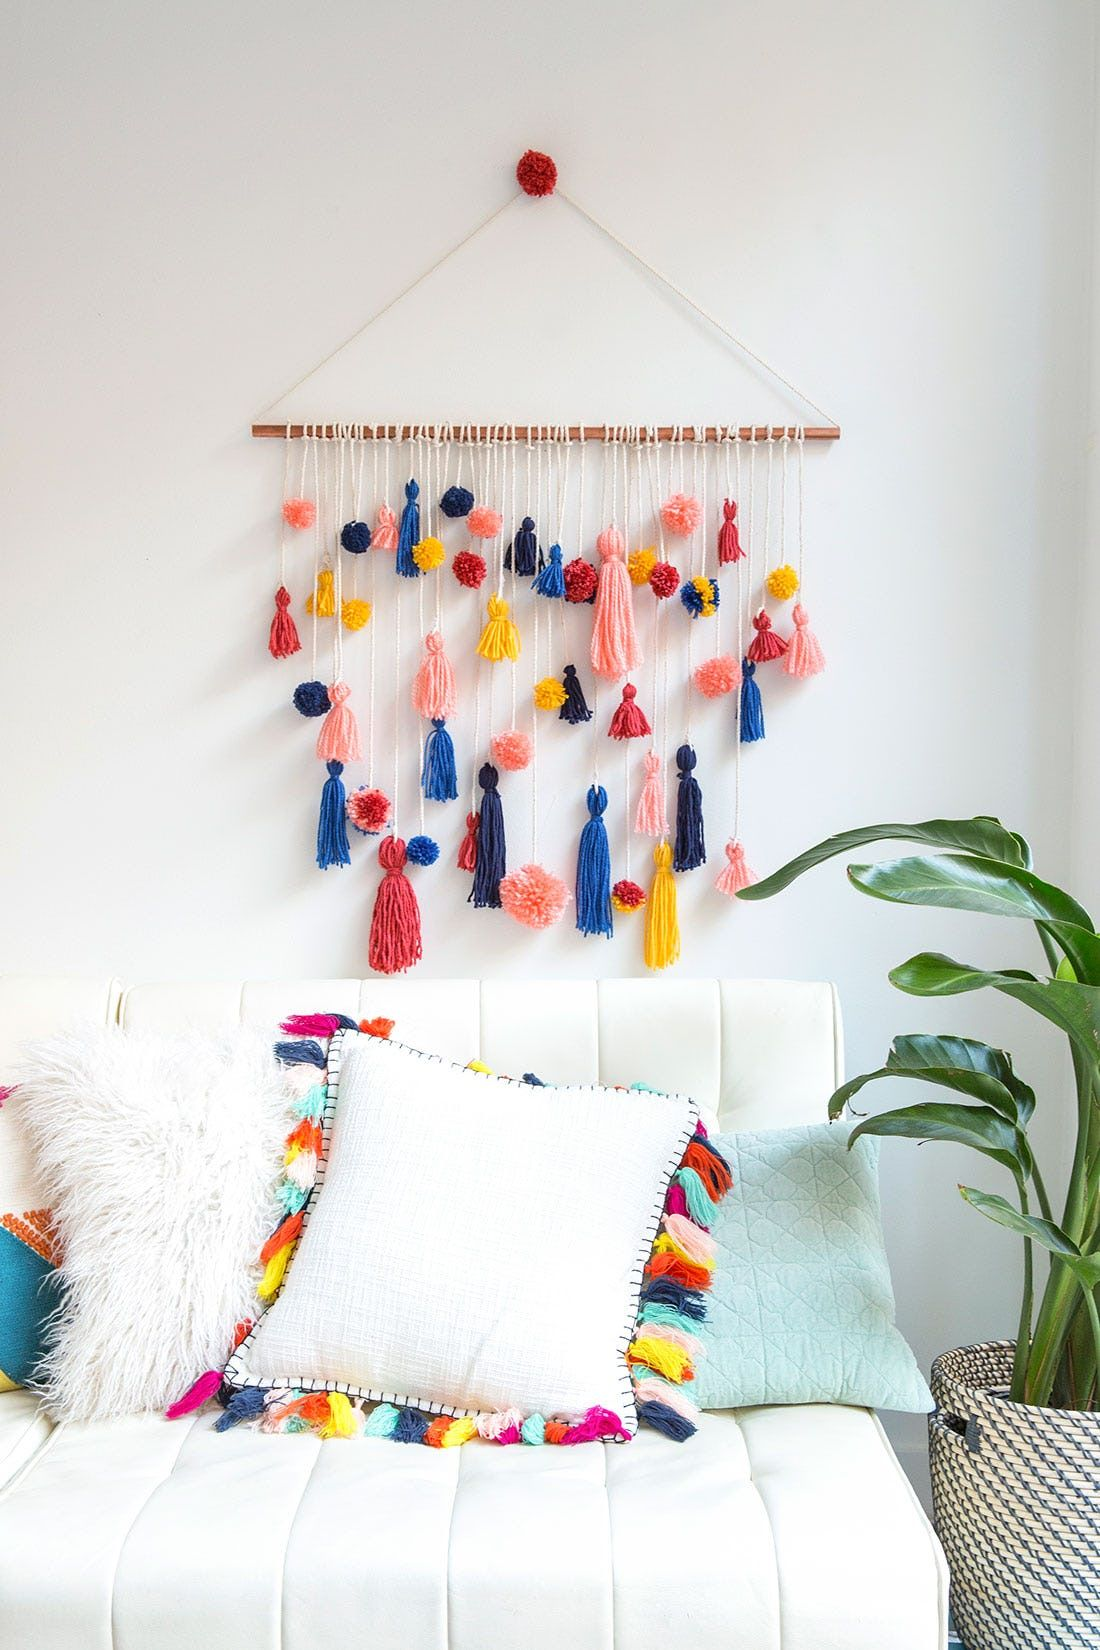 How to Make This Ridiculously Adorable Pom-Pom Tassel Wall Hanging